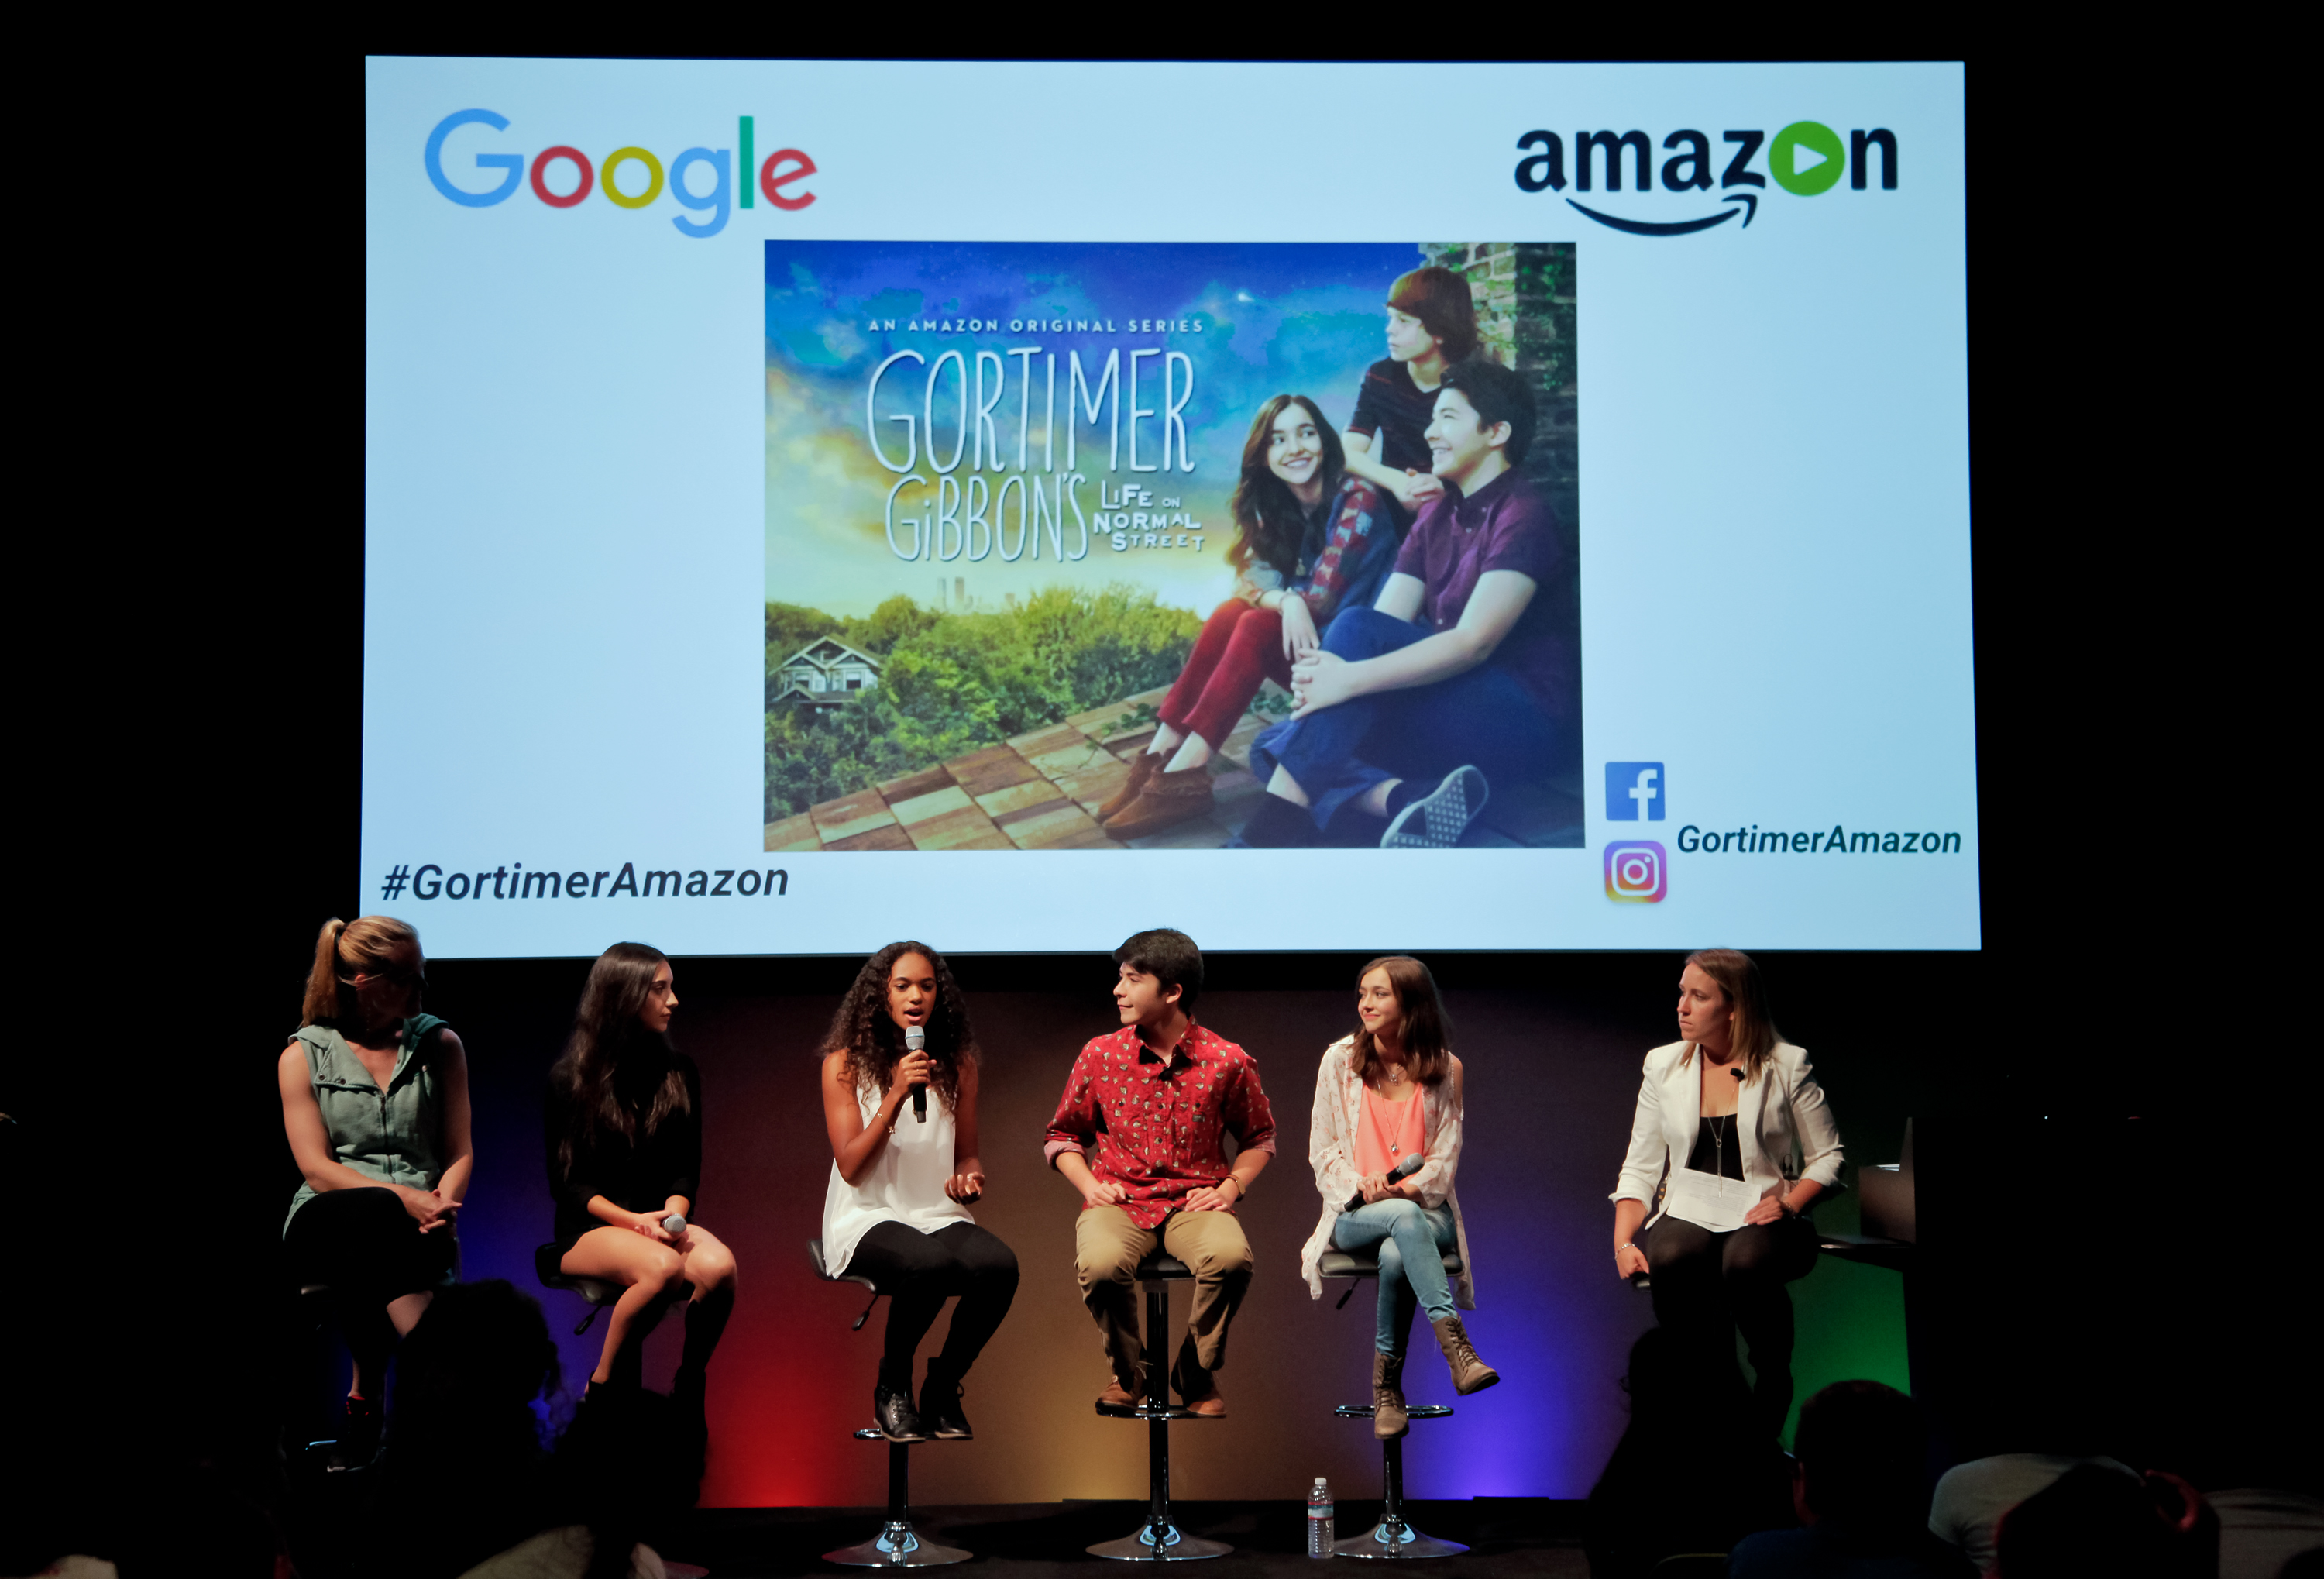 """Amazon And Google Team Up For STEM Panel With Cast Of """"Gortimer Gibbon's Life On Normal Street"""""""